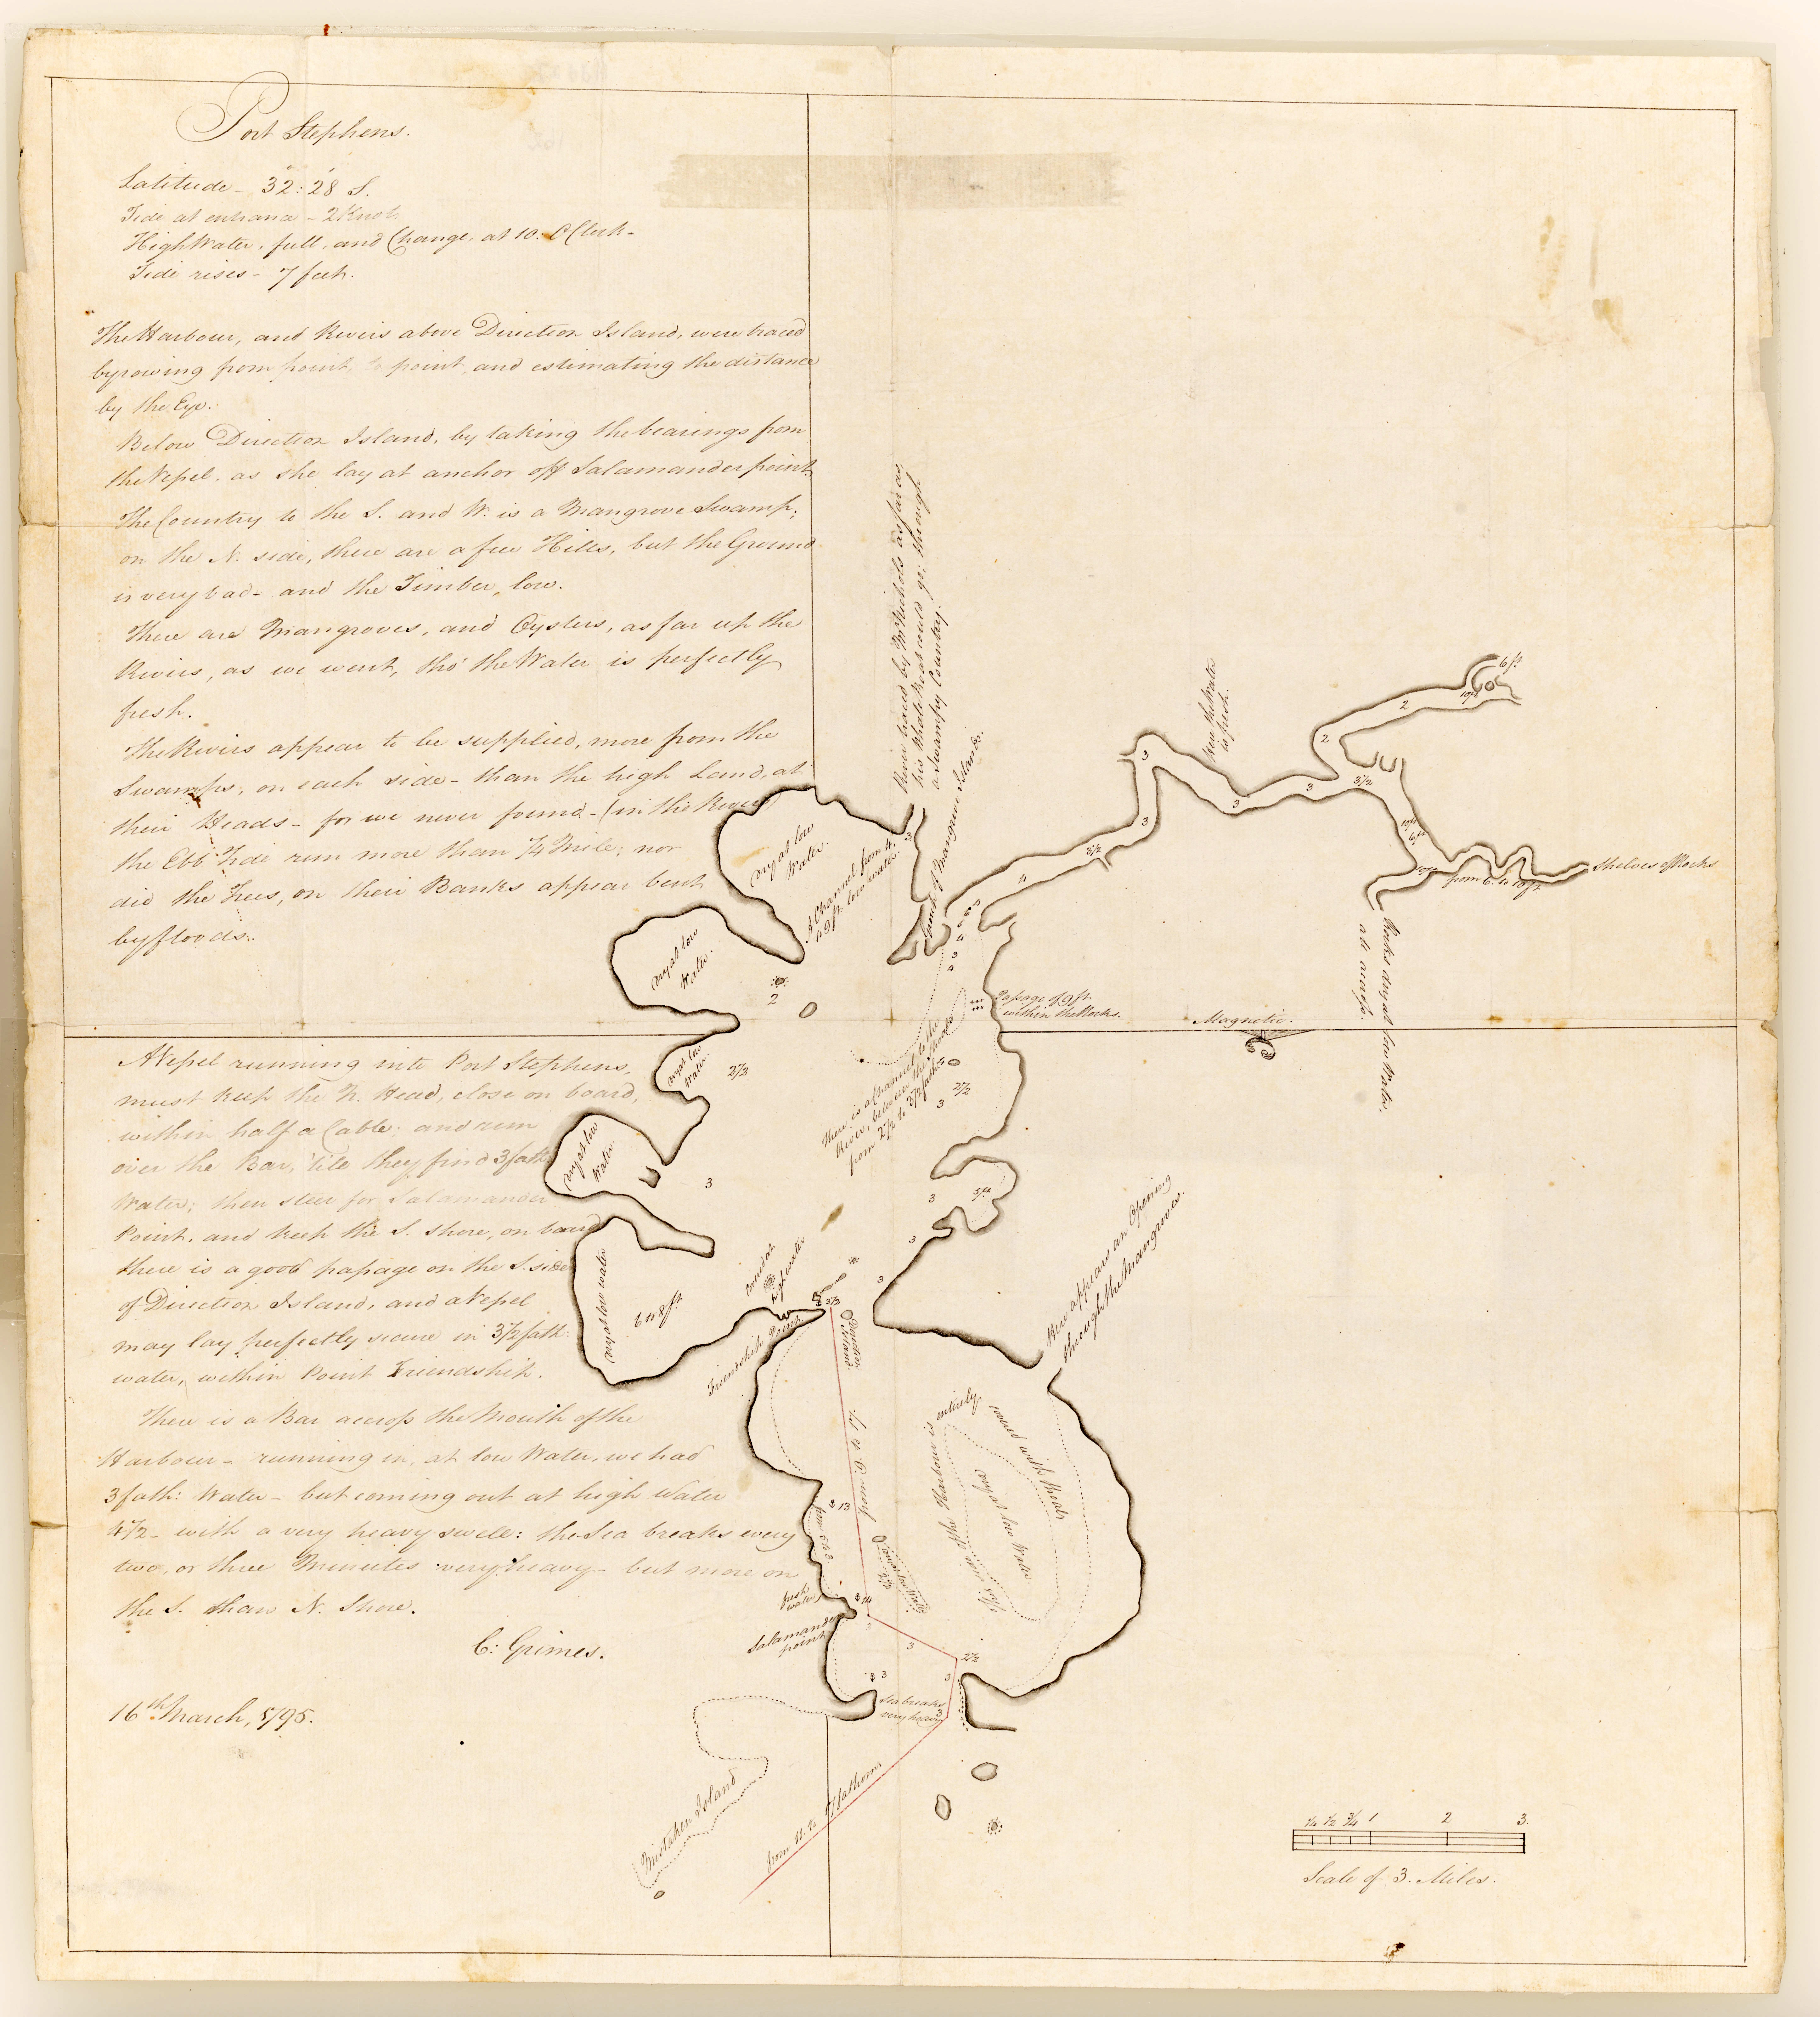 Port Stephens Surveyed by C Grimes 16th March 1795 (Courtesy of the State Library of NSW)